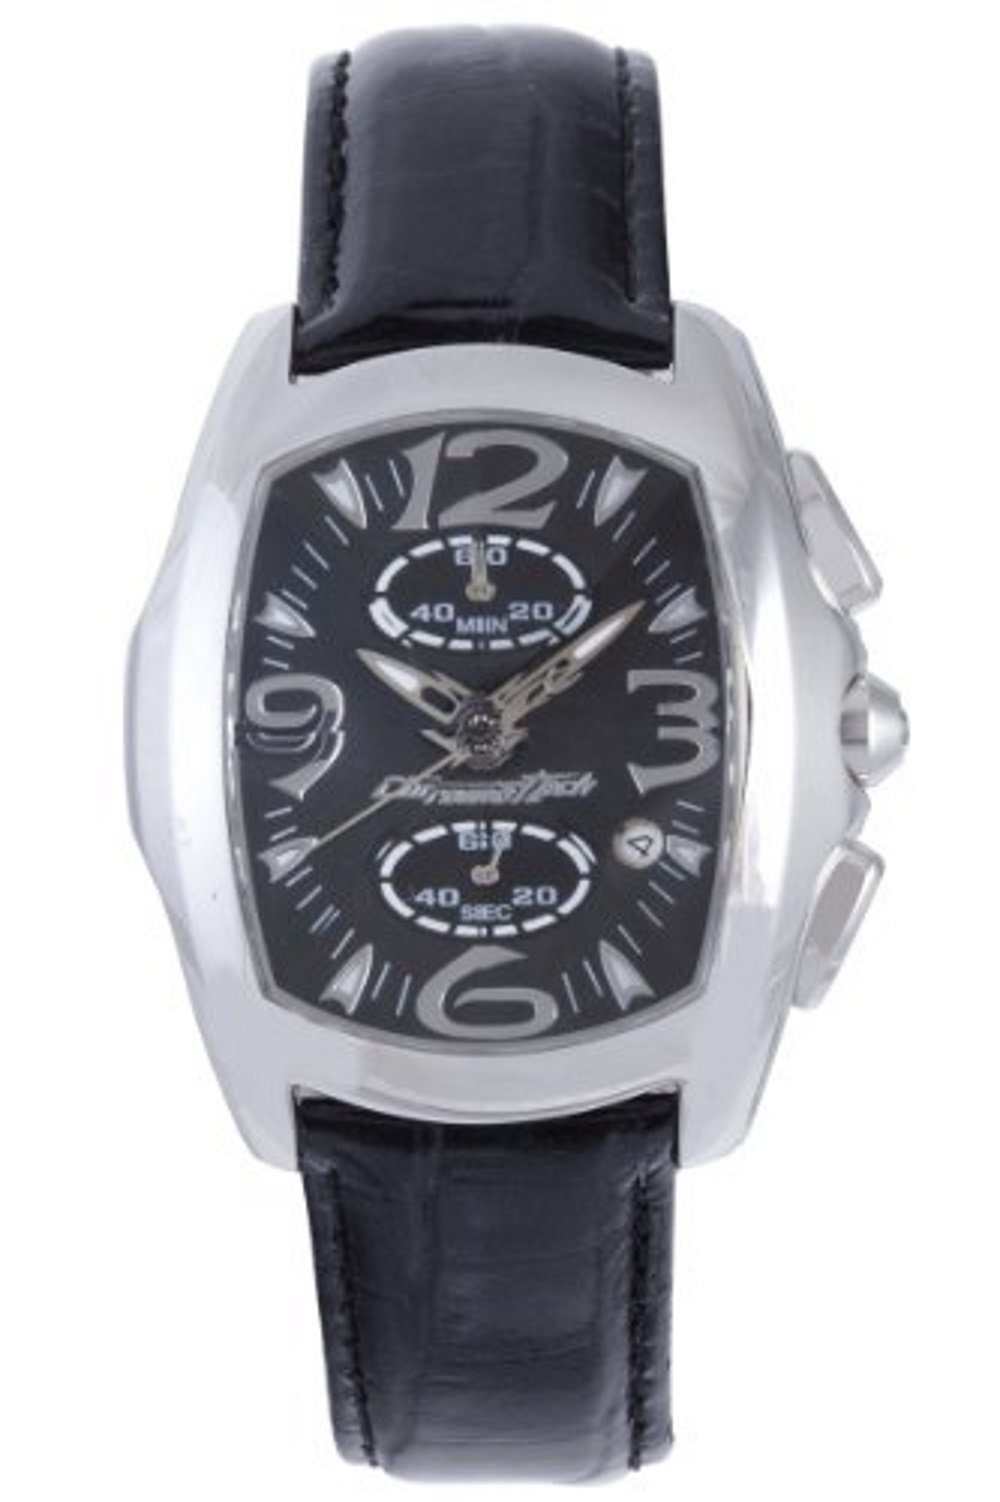 Chronotech CT.7895M-92 Mens Black Dial Watch by Chronotech